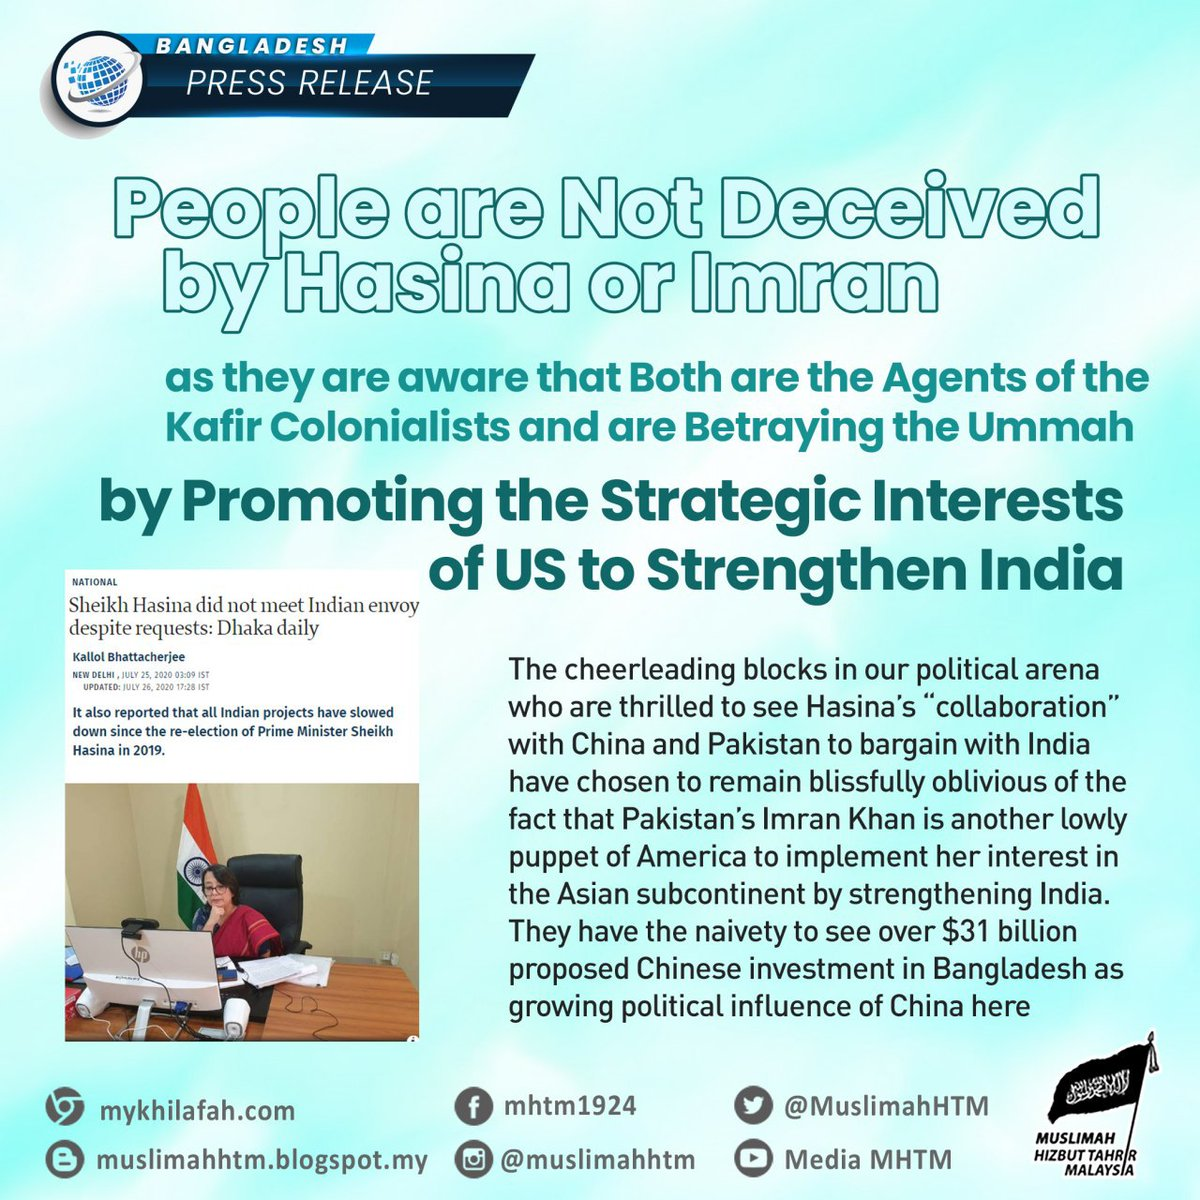 [GLOBAL] #BANGLADESH - Press Release  People are Not Deceived by #Hasina or Imran as they are aware that Both are the Agents of the Kafir #Colonialists and are Betraying the Ummah by Promoting the Strategic..  Full Article: https://t.co/48YYSwUW6x https://t.co/ulvMMgCCjL